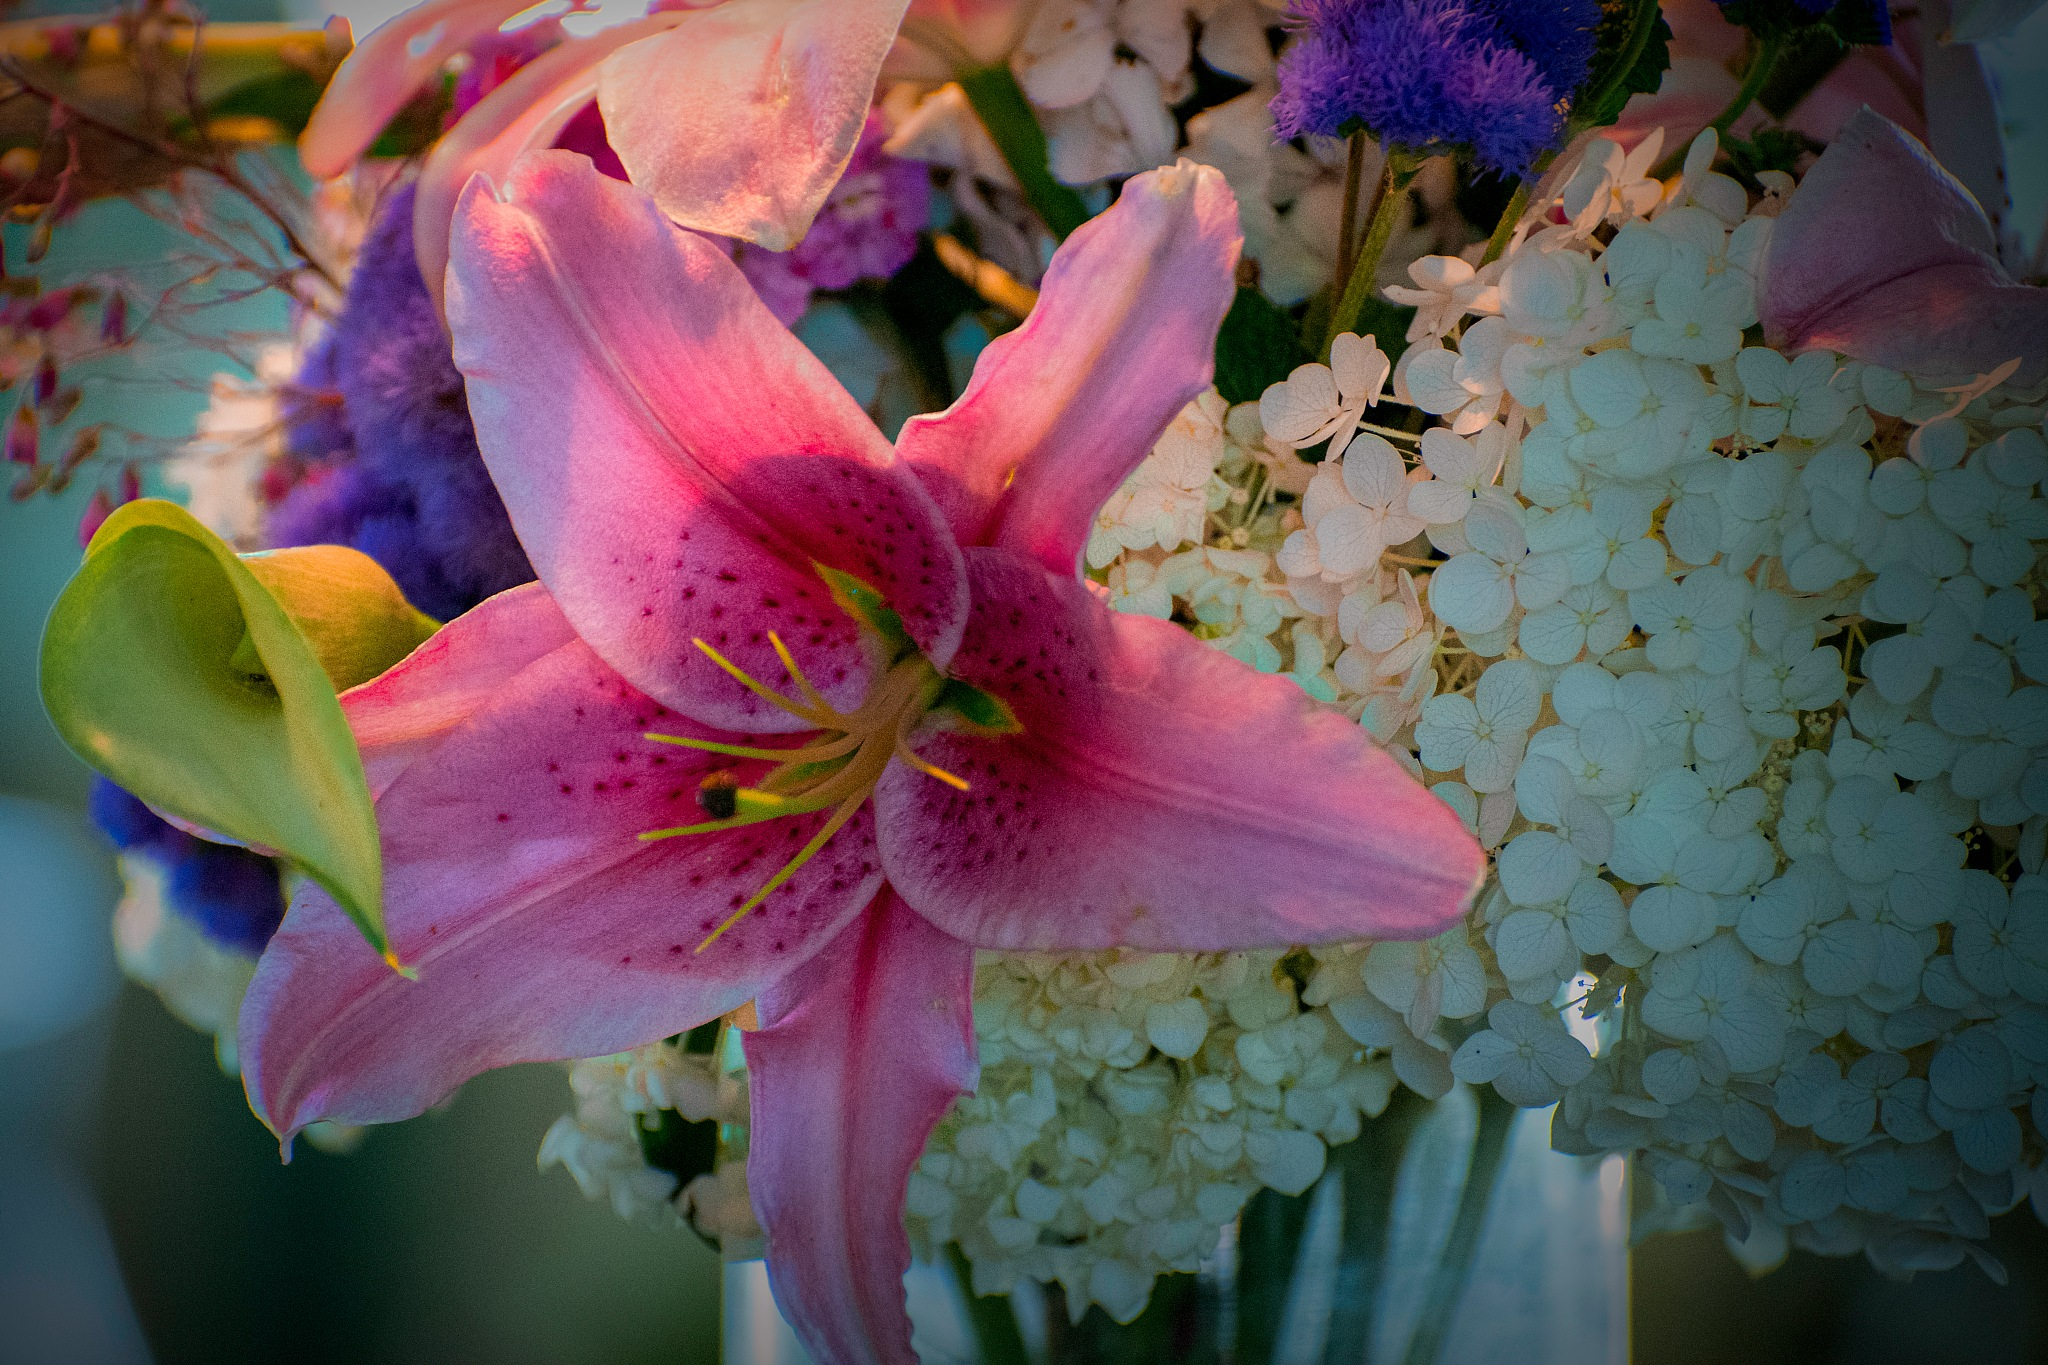 Floral 213 by JohnEllingson